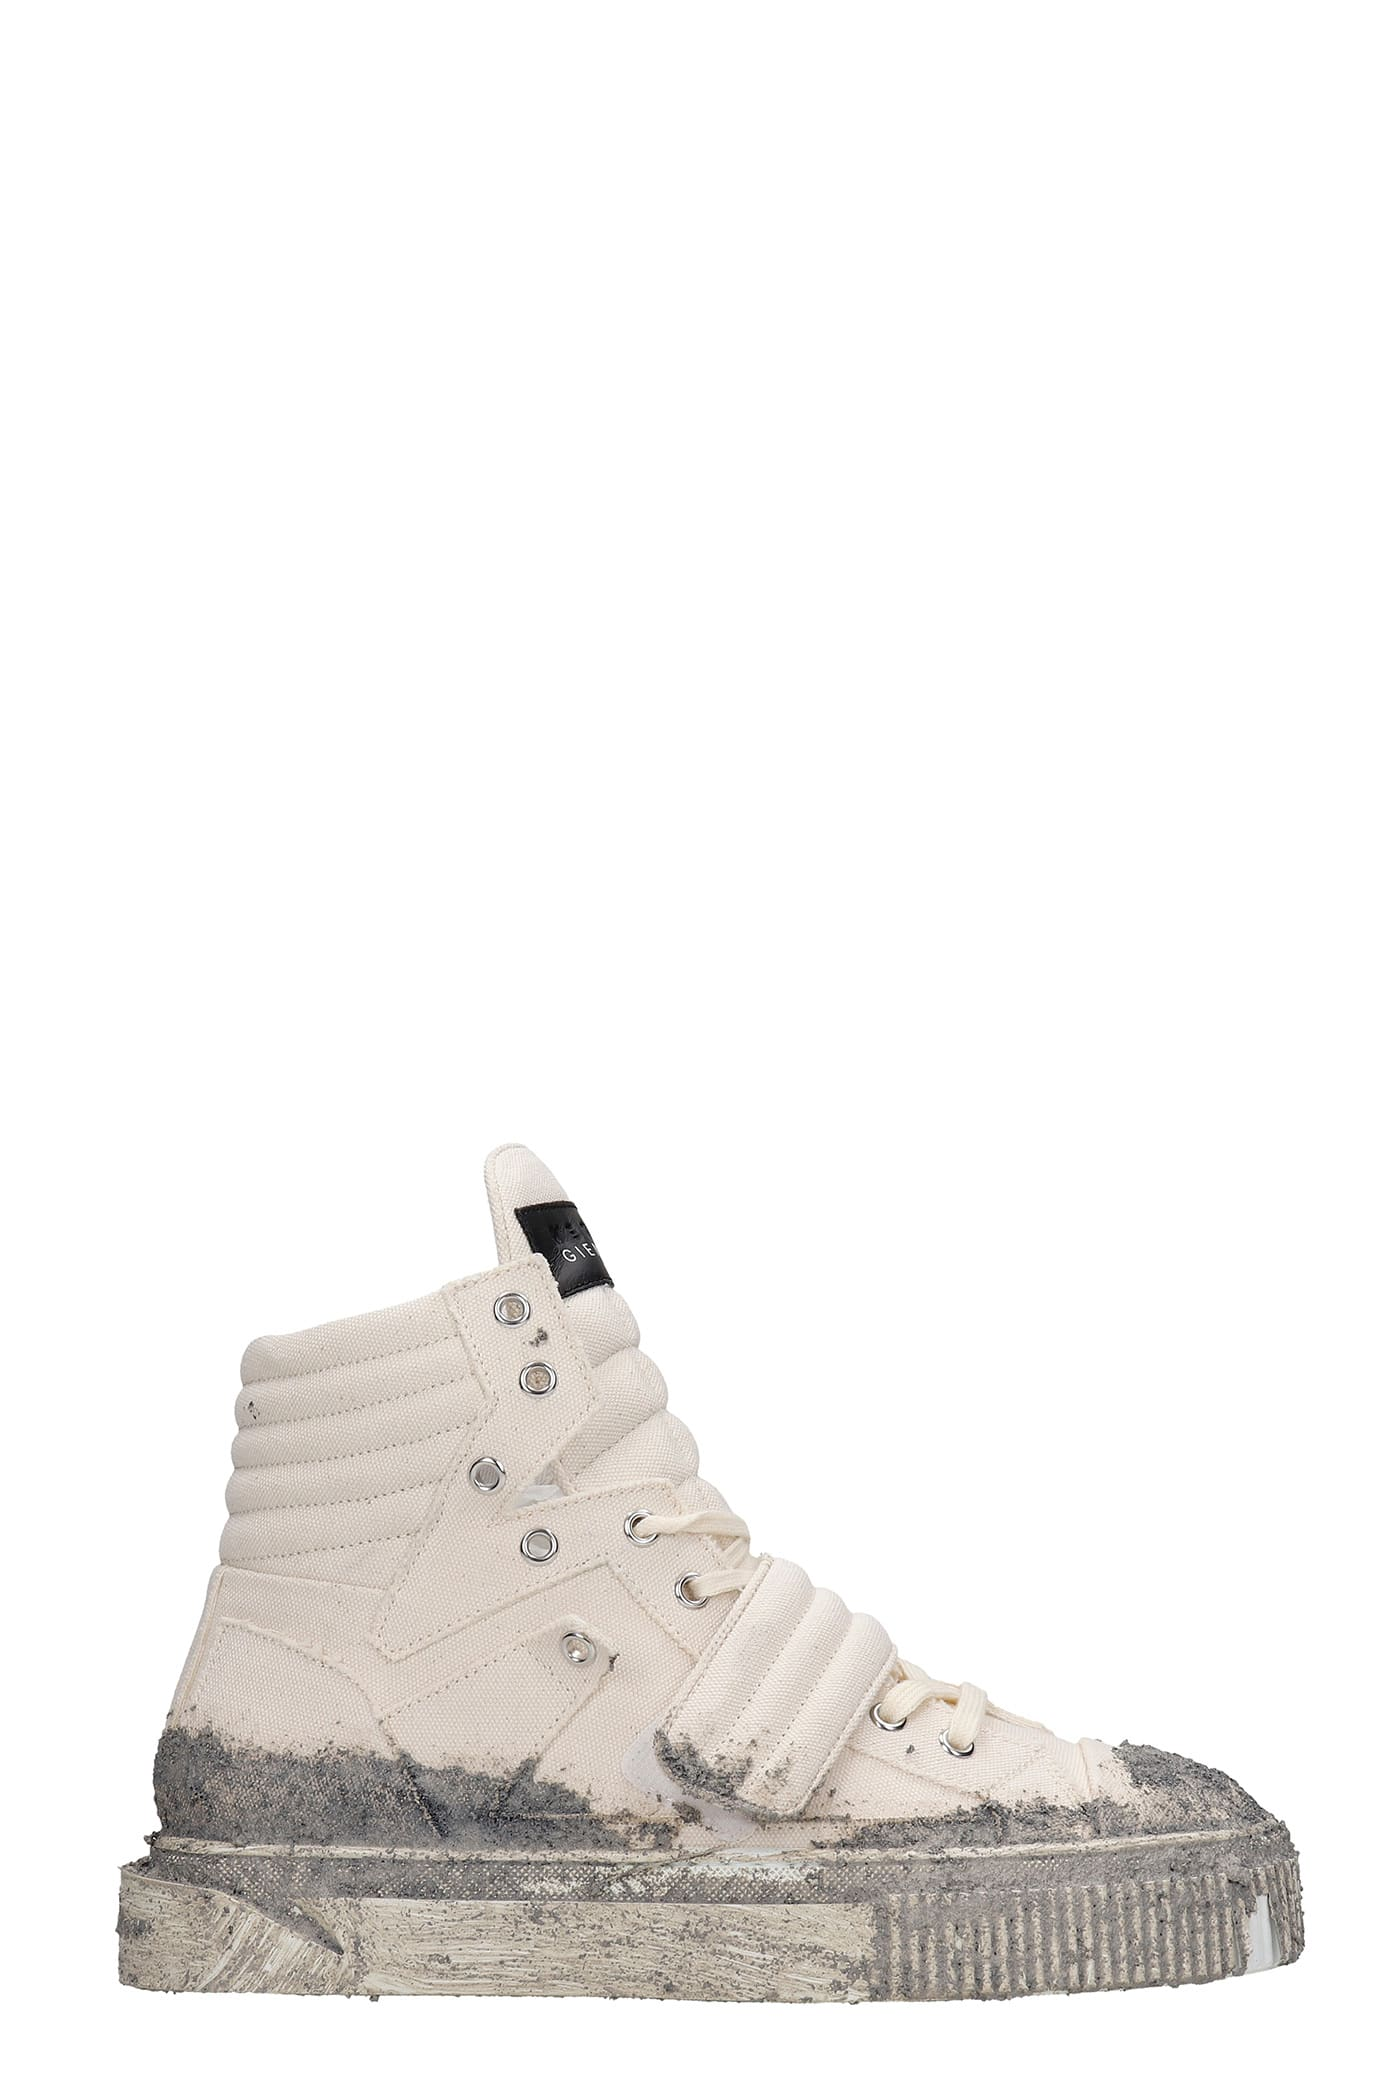 Hypnos Sneakers In Beige Canvas